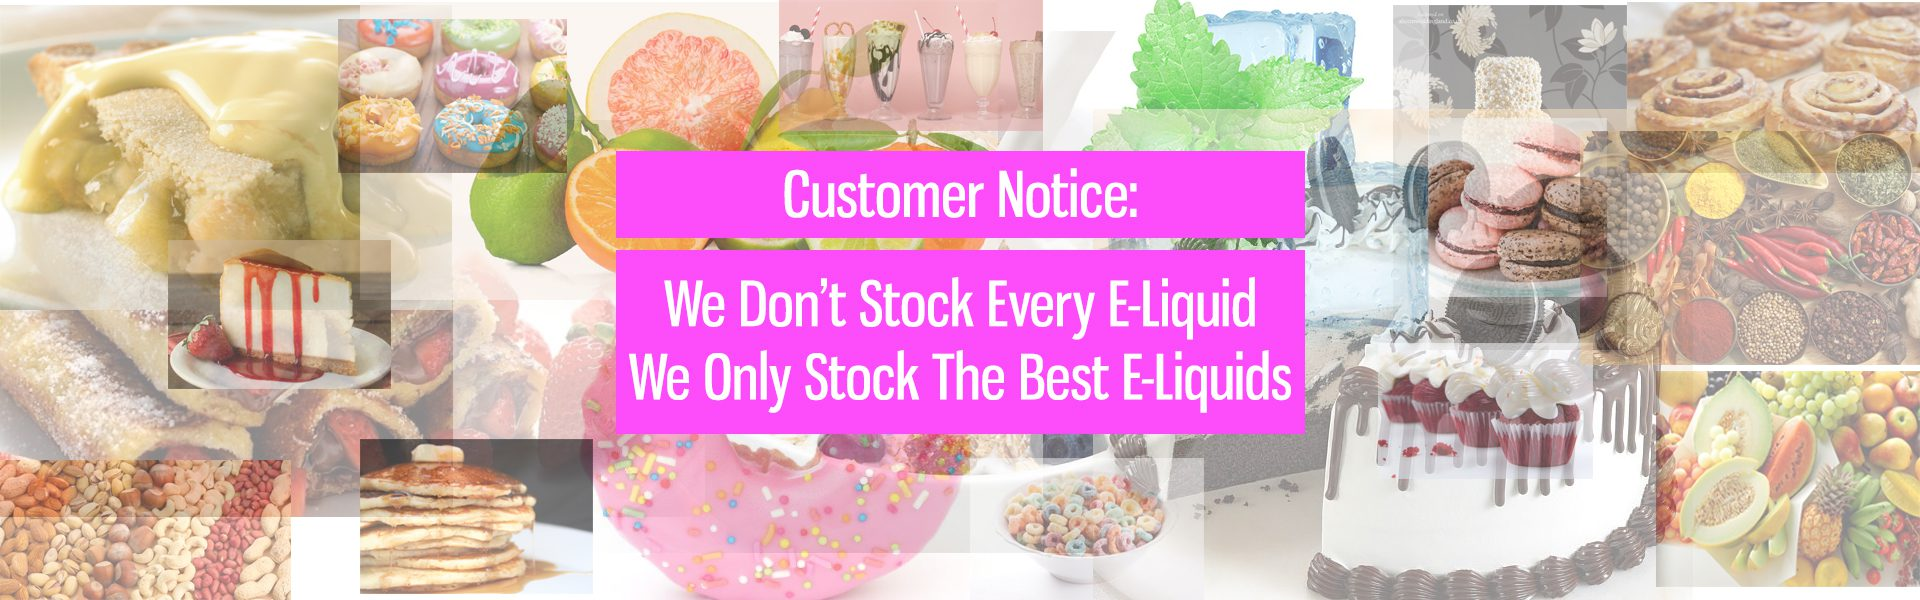 We-only-stock-the-best